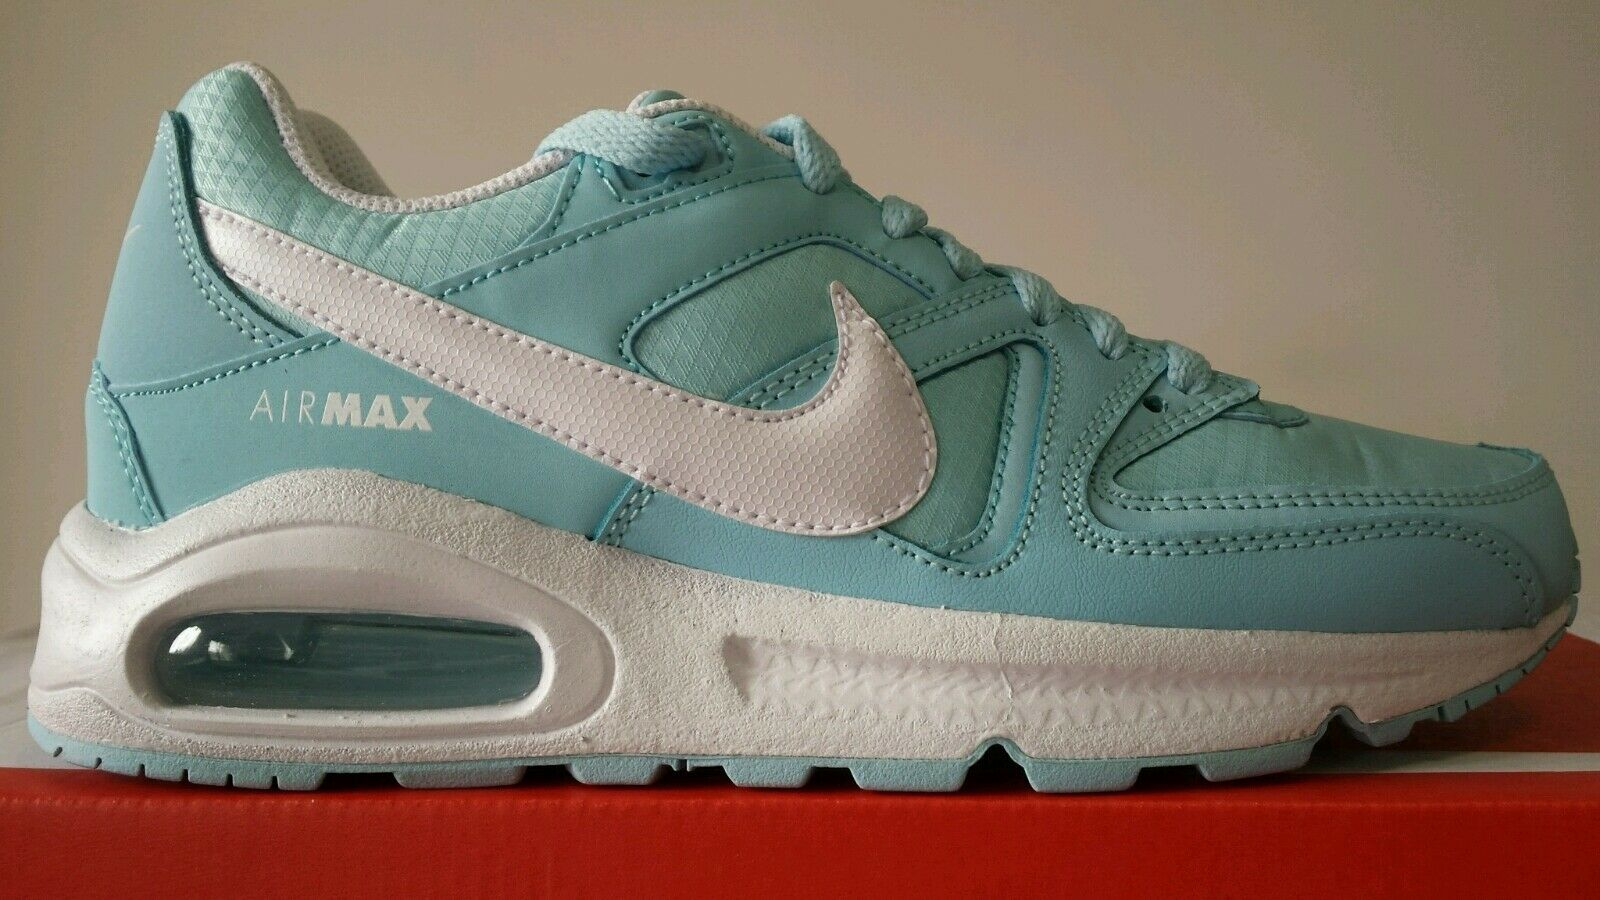 NIKE AIR MAX COMMAND N.38,5 97 WMNS AZZURRINE BIANCA N.38,5 COMMAND LIMITED COLOR OKKSPORT d4c394